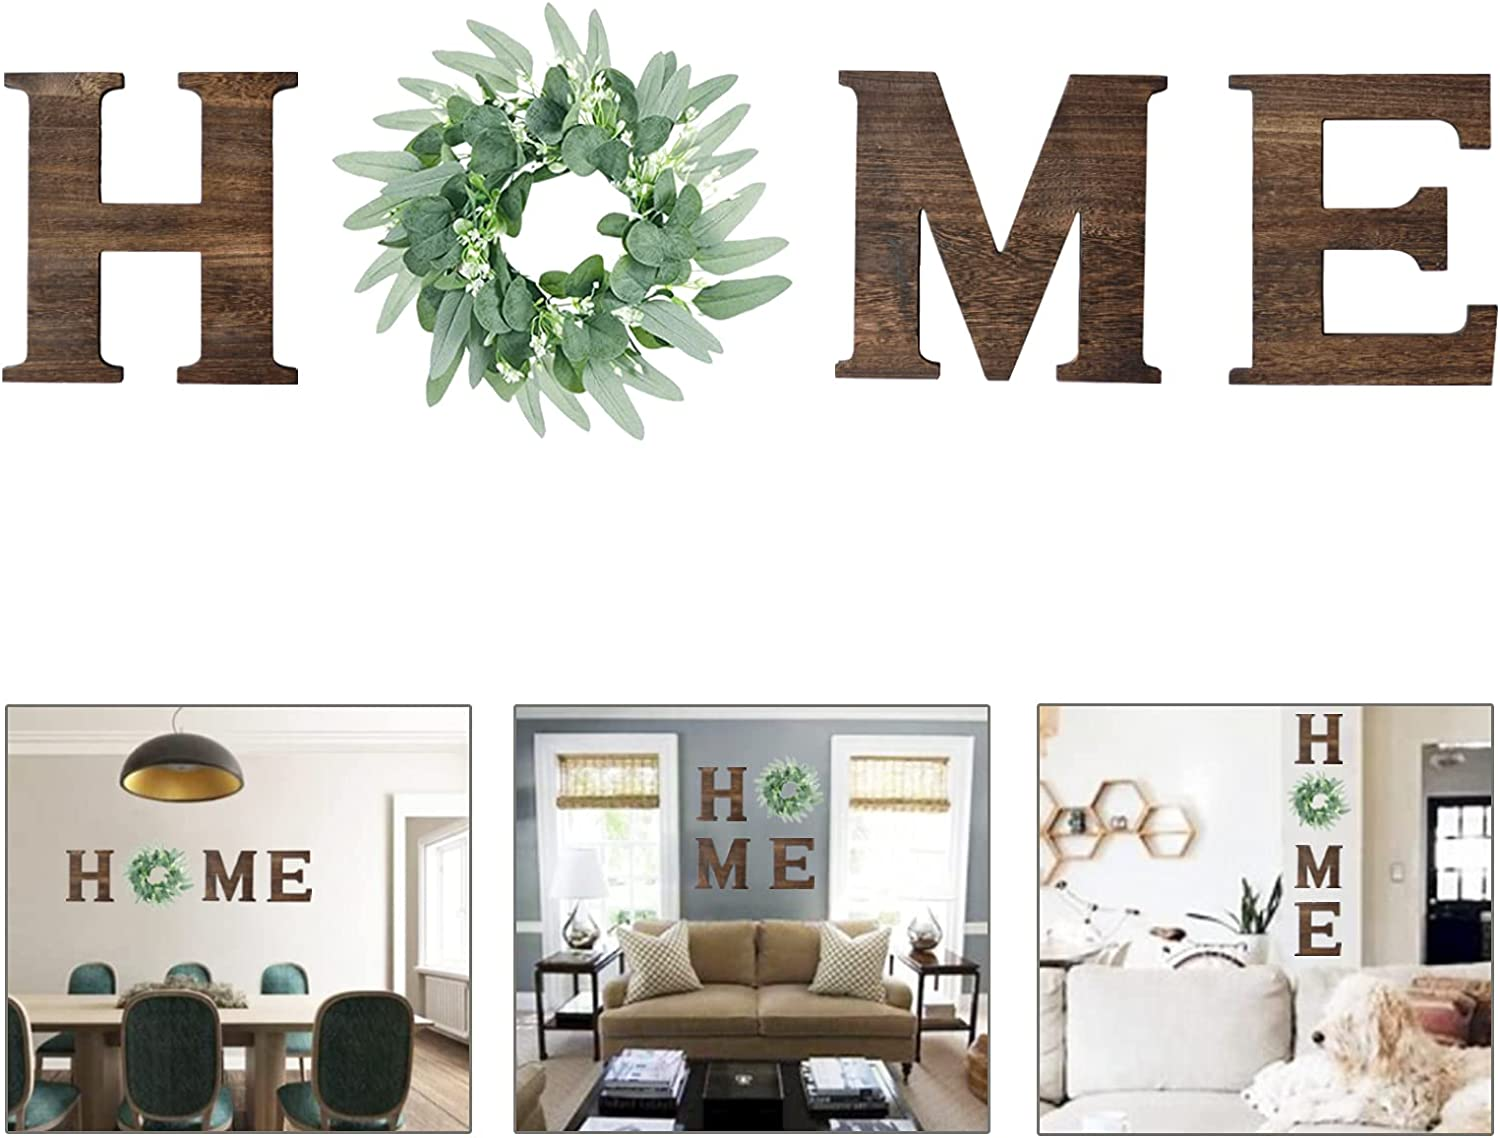 LHLJOYU Wooden Home Sign Decorative Wall Hanging Wood Letters Decor with Artificial Eucalyptus Wreath for Art Rustic Home Wall Living Room Kitchen Decorative Housewarming Gift (Brown, 9.3